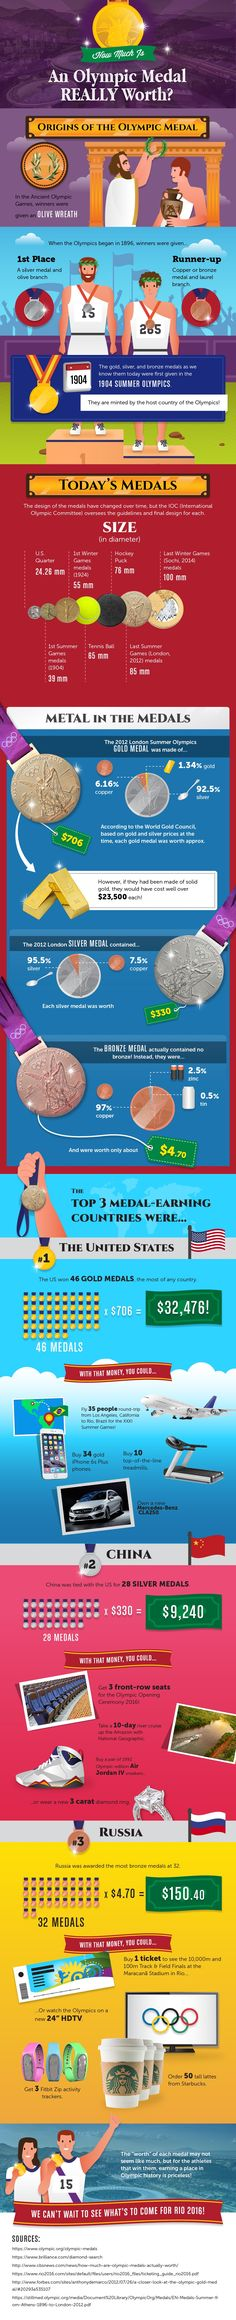 How much is an Olympic medal worth? (Infographic) – DAILY WAFFLE